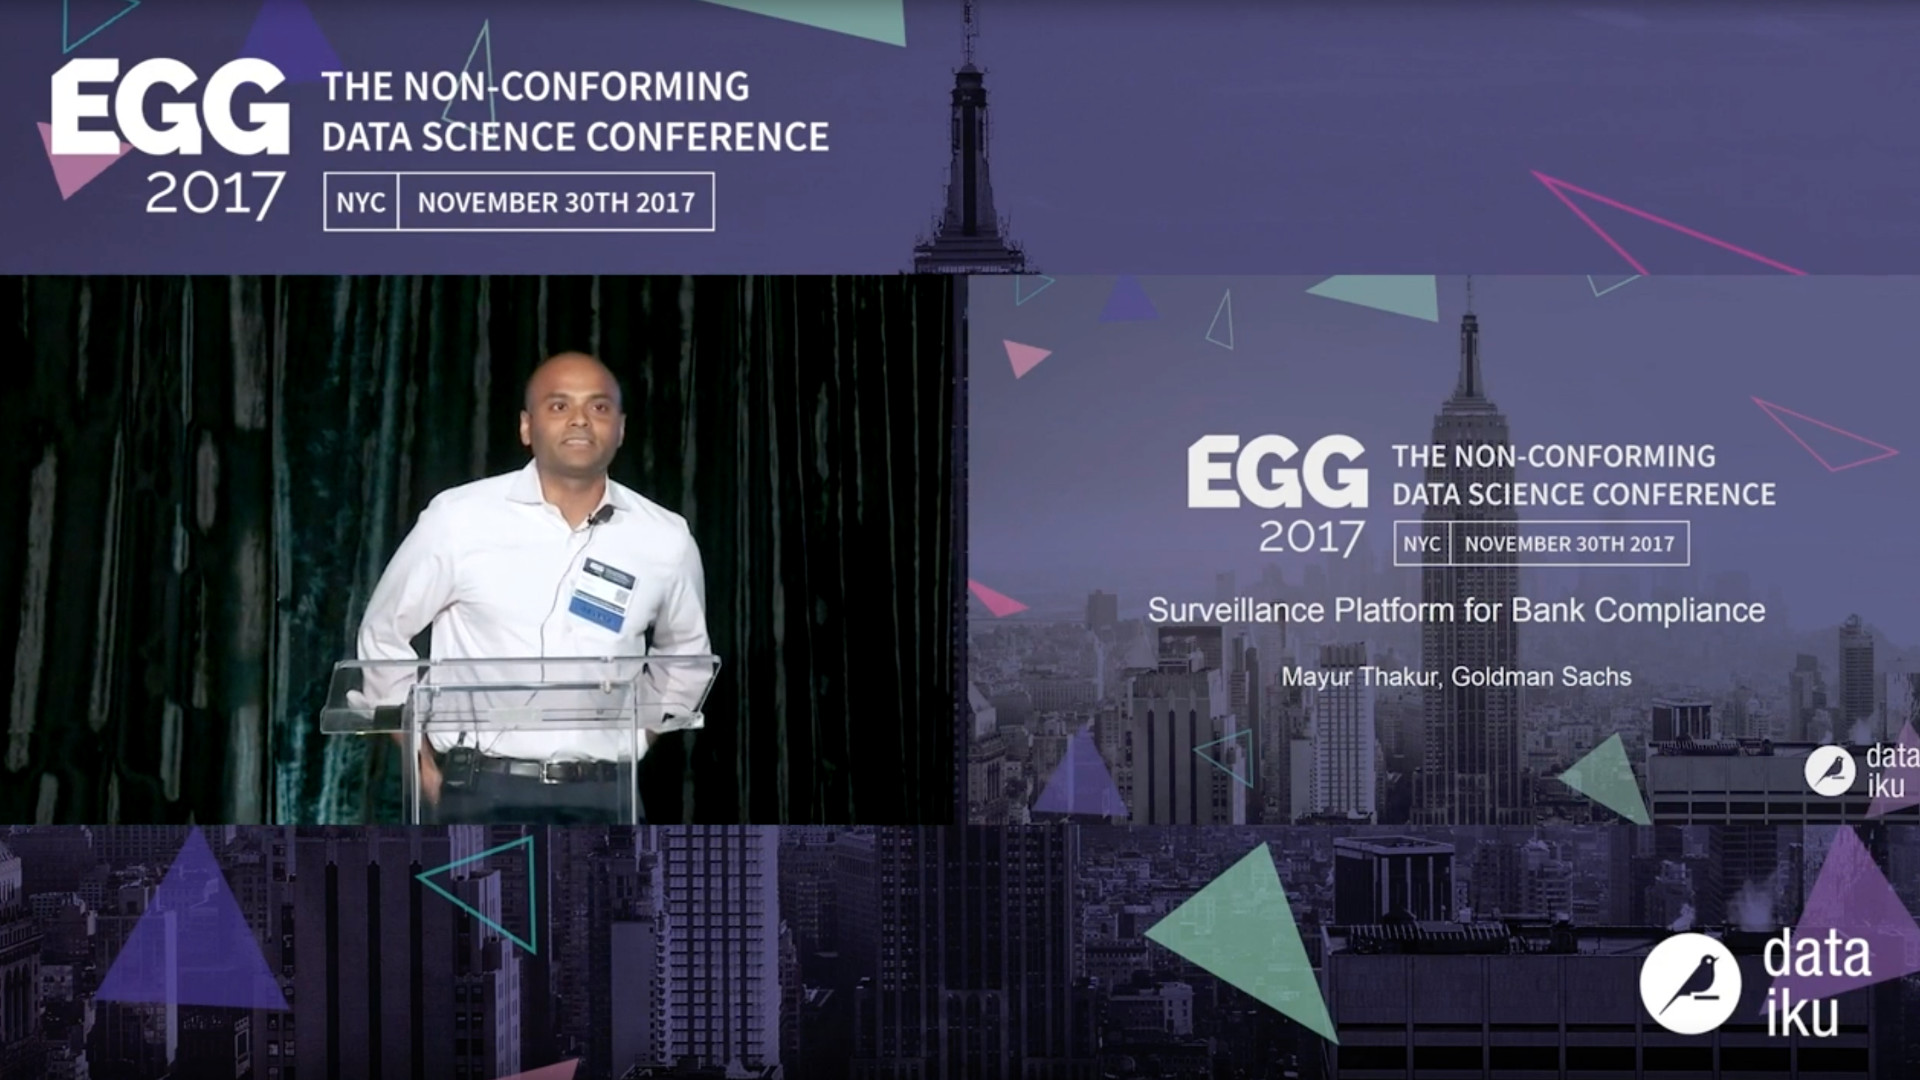 EGG ON AIR thumbnail Surveillance Platform for Bank Compliance-High-Quality